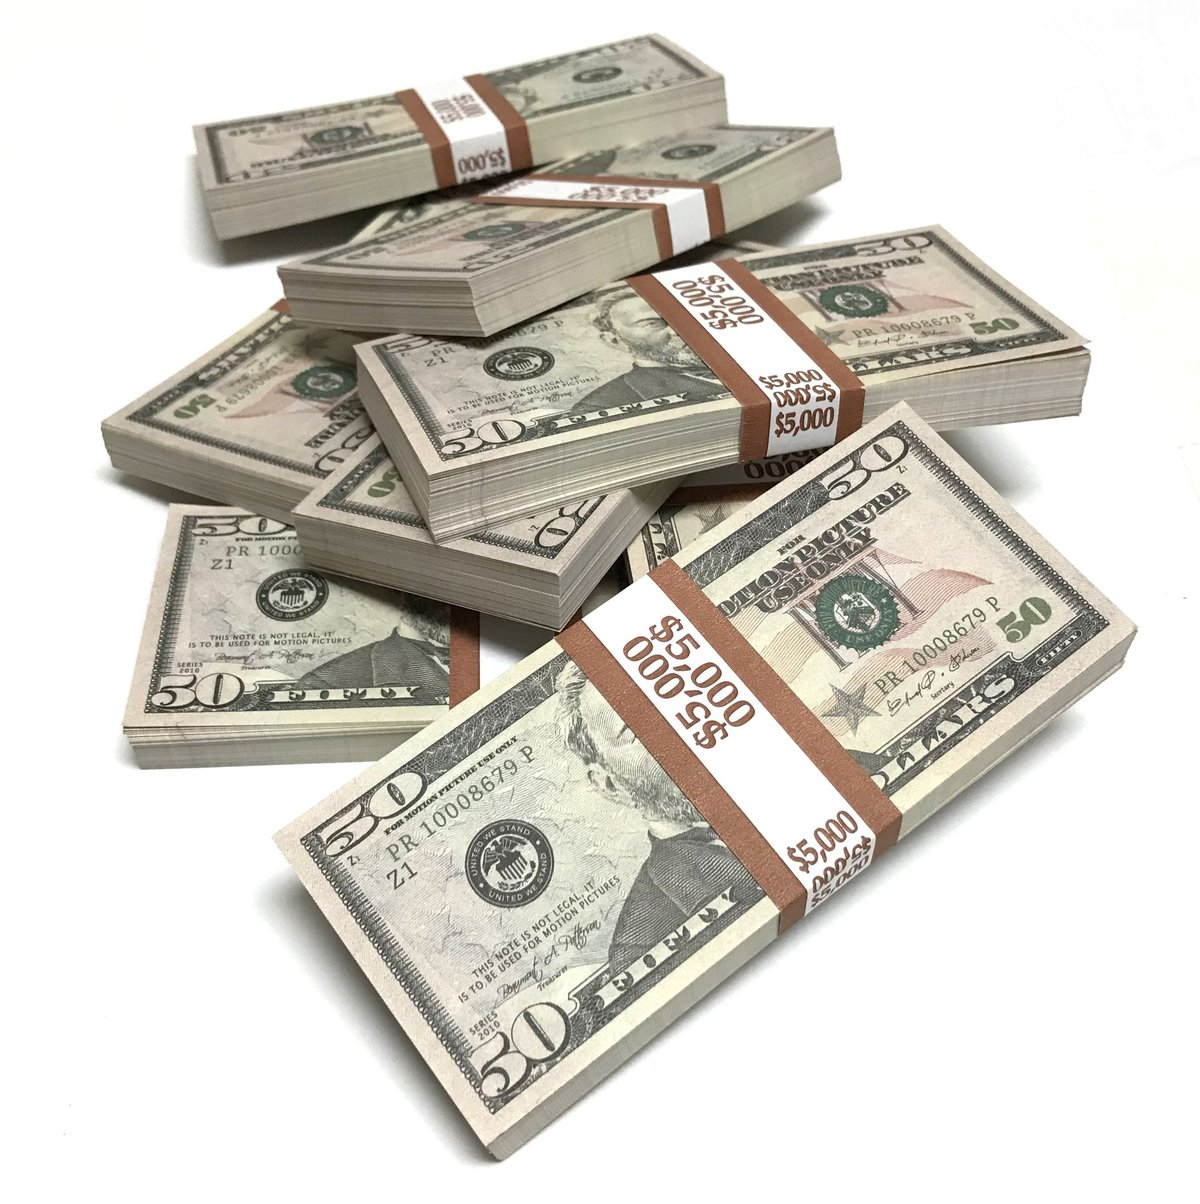 Image of lots of cash